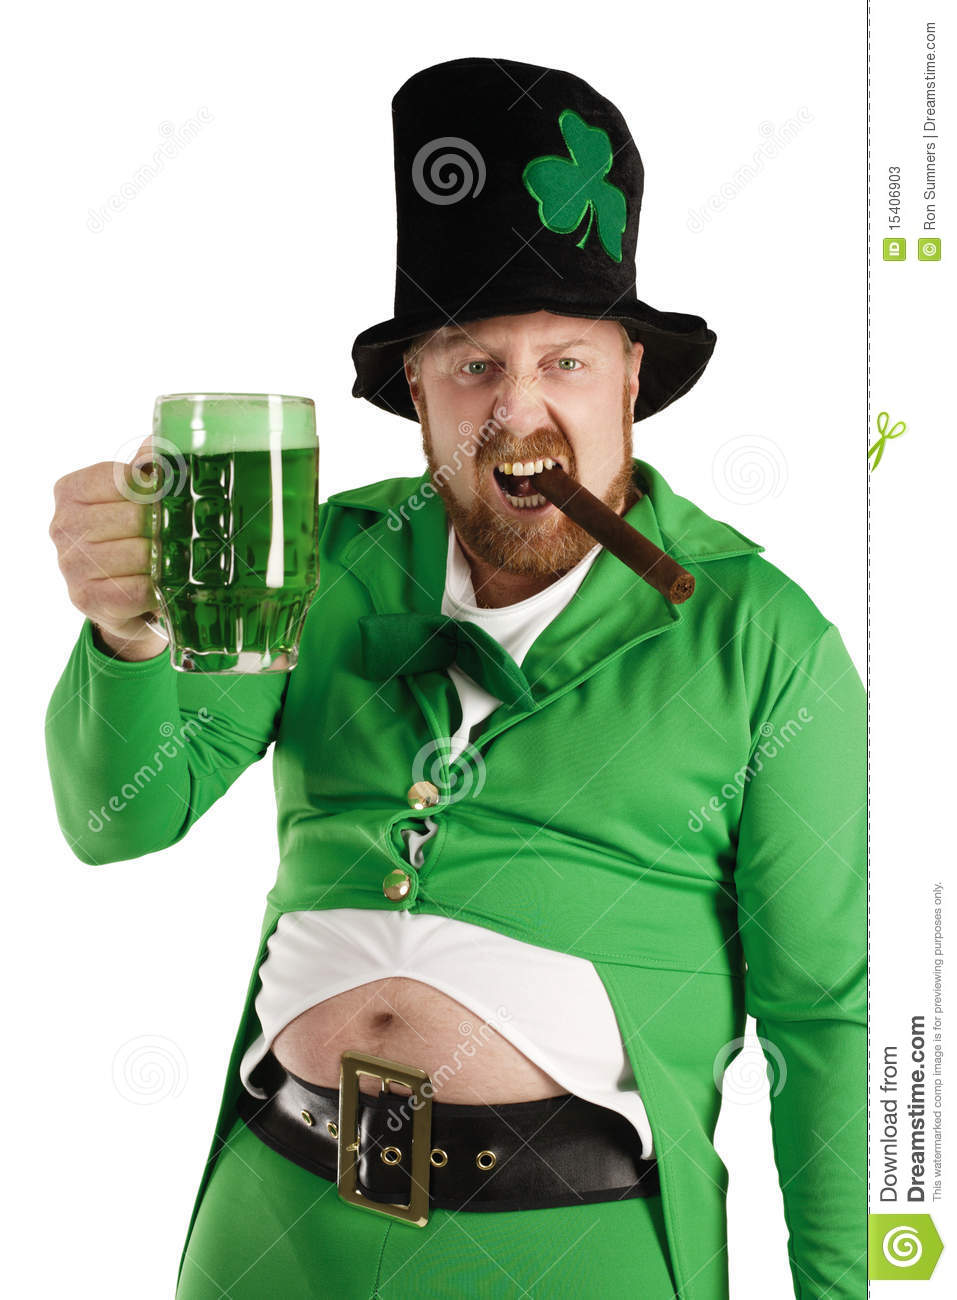 Irish Blessings Leprechaun-hoisting-green-beer-15406903